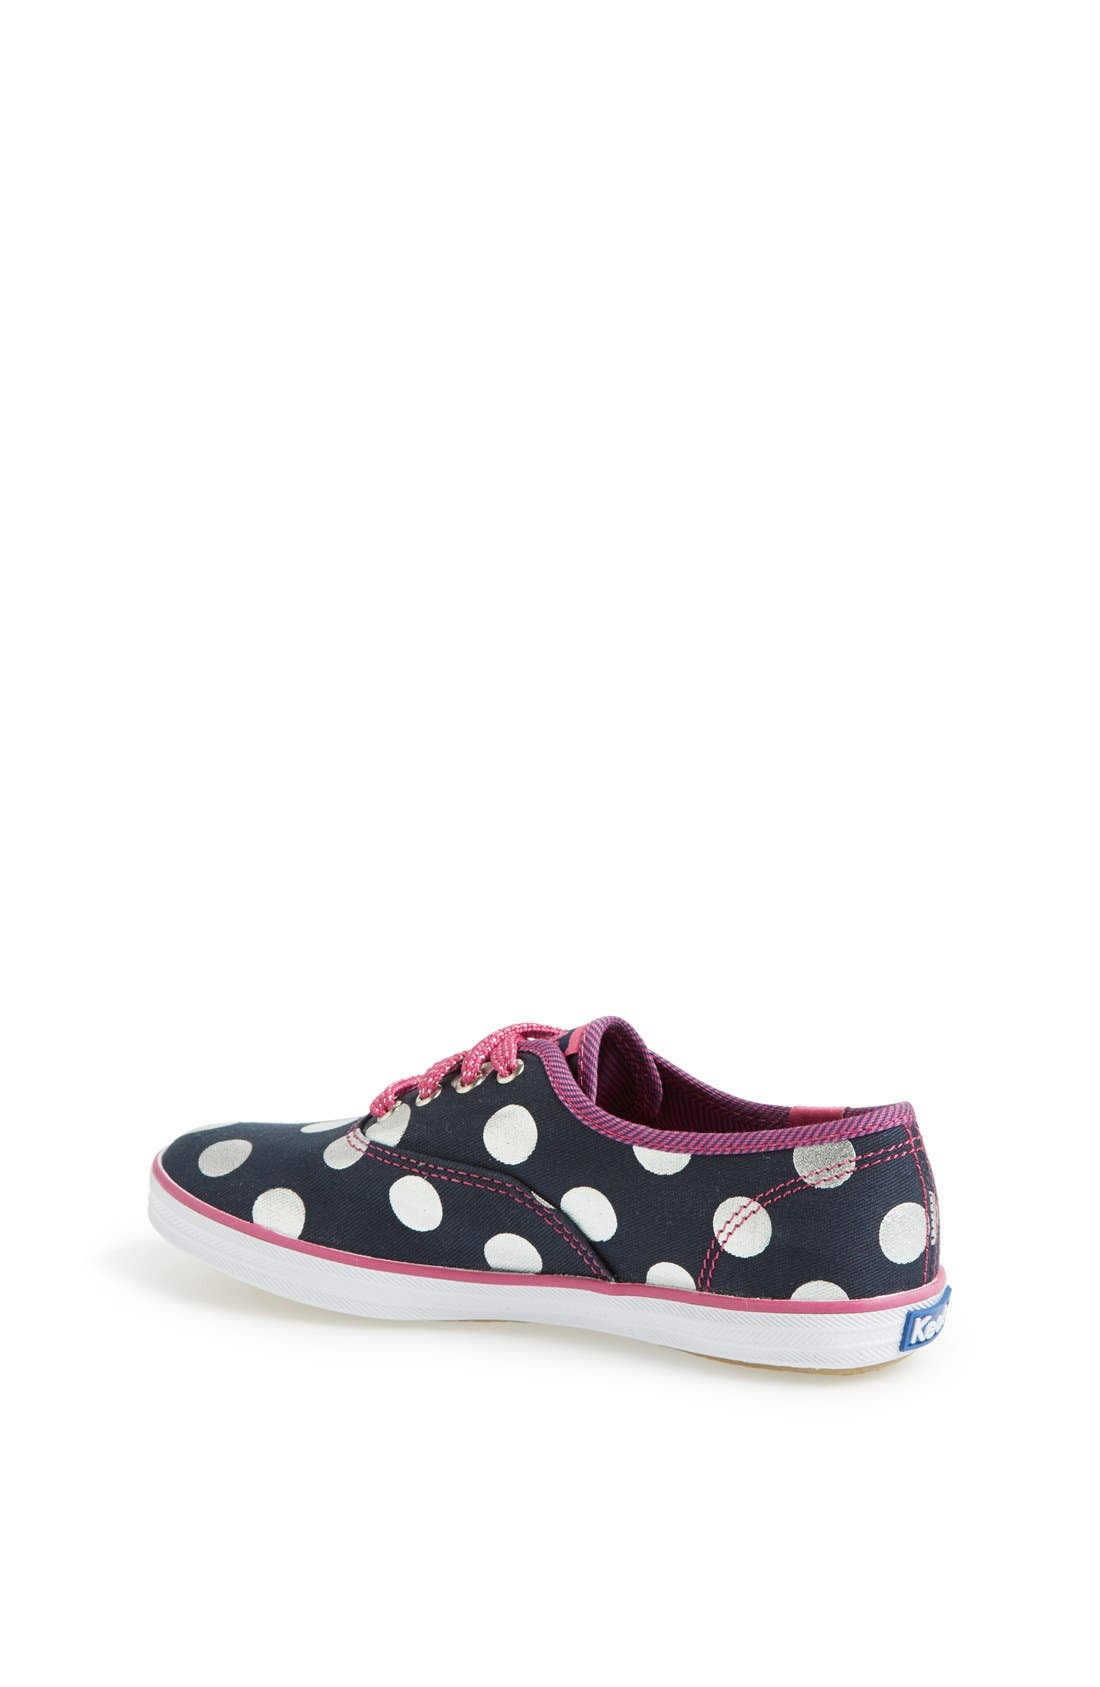 Alternate Image 2  - Keds® 'Champion' Polka Dot Sneaker (Walker, Toddler, Little Kid & Big Kid)